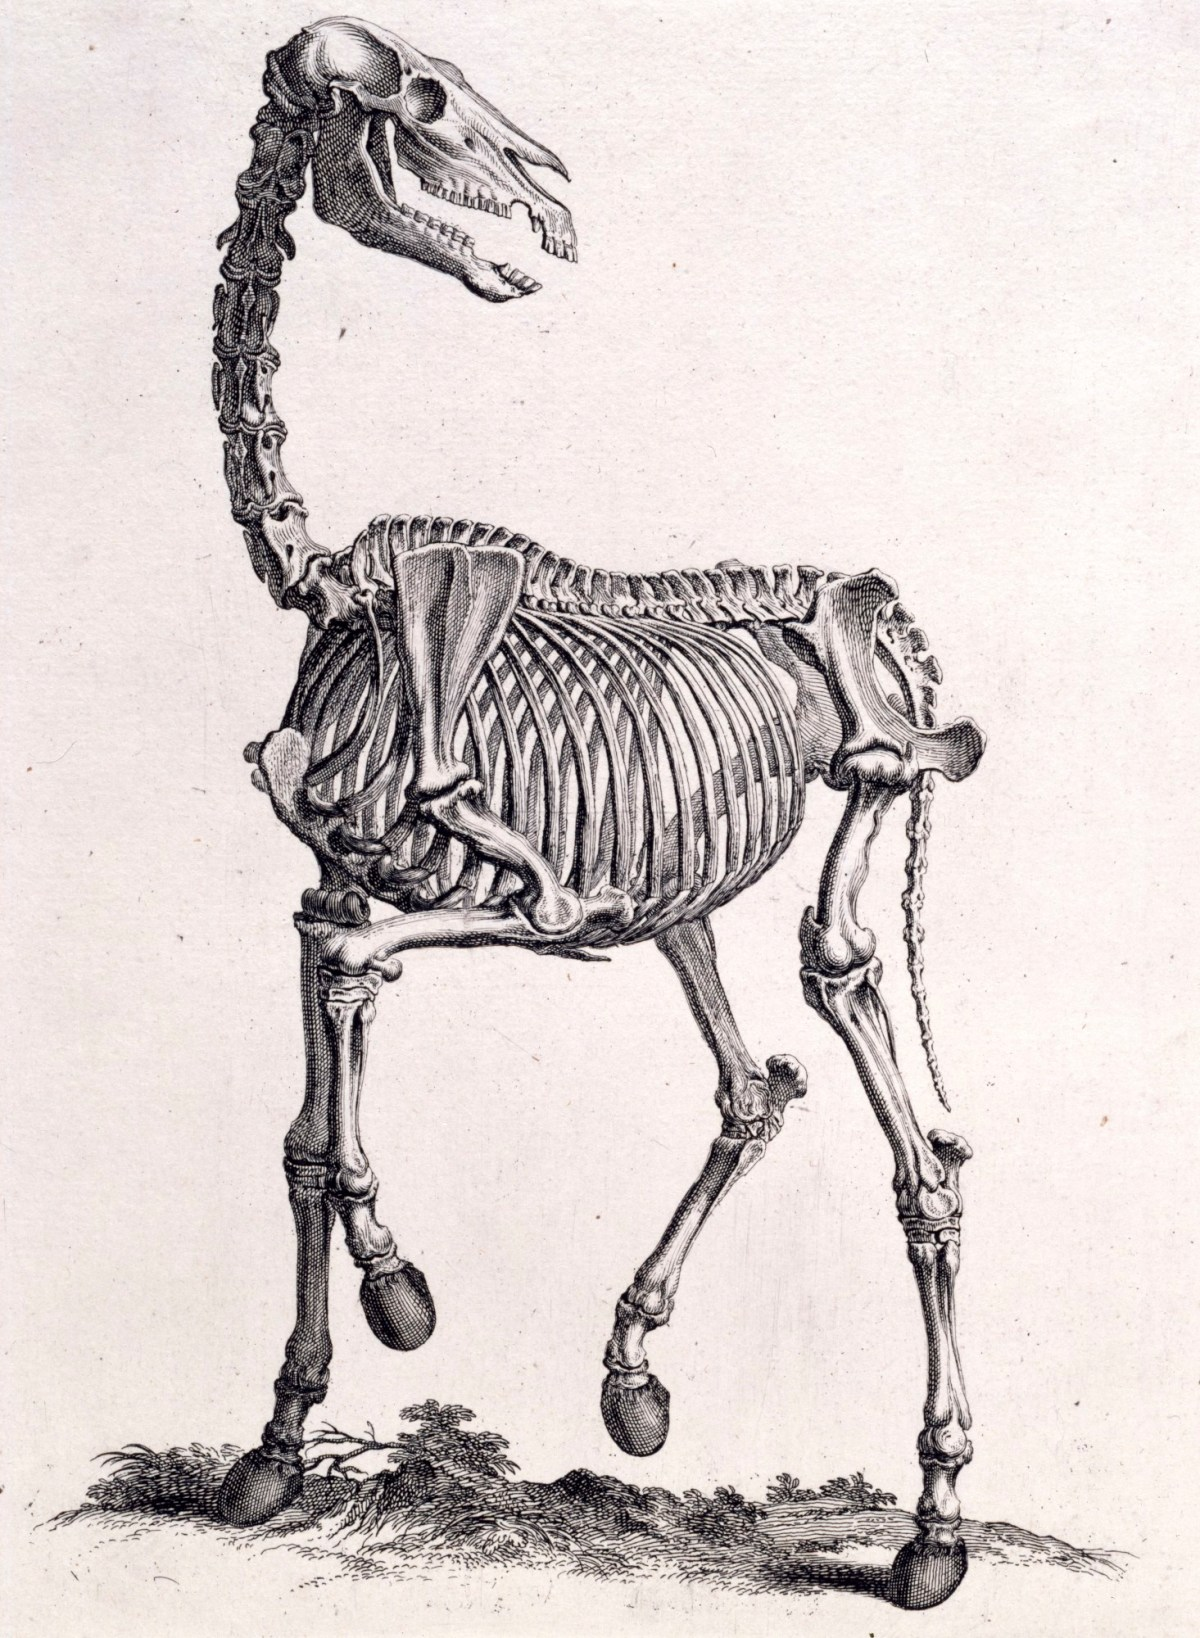 The Skeleton Of The Horse Works Of Art Ra Collection Royal Academy Of Arts